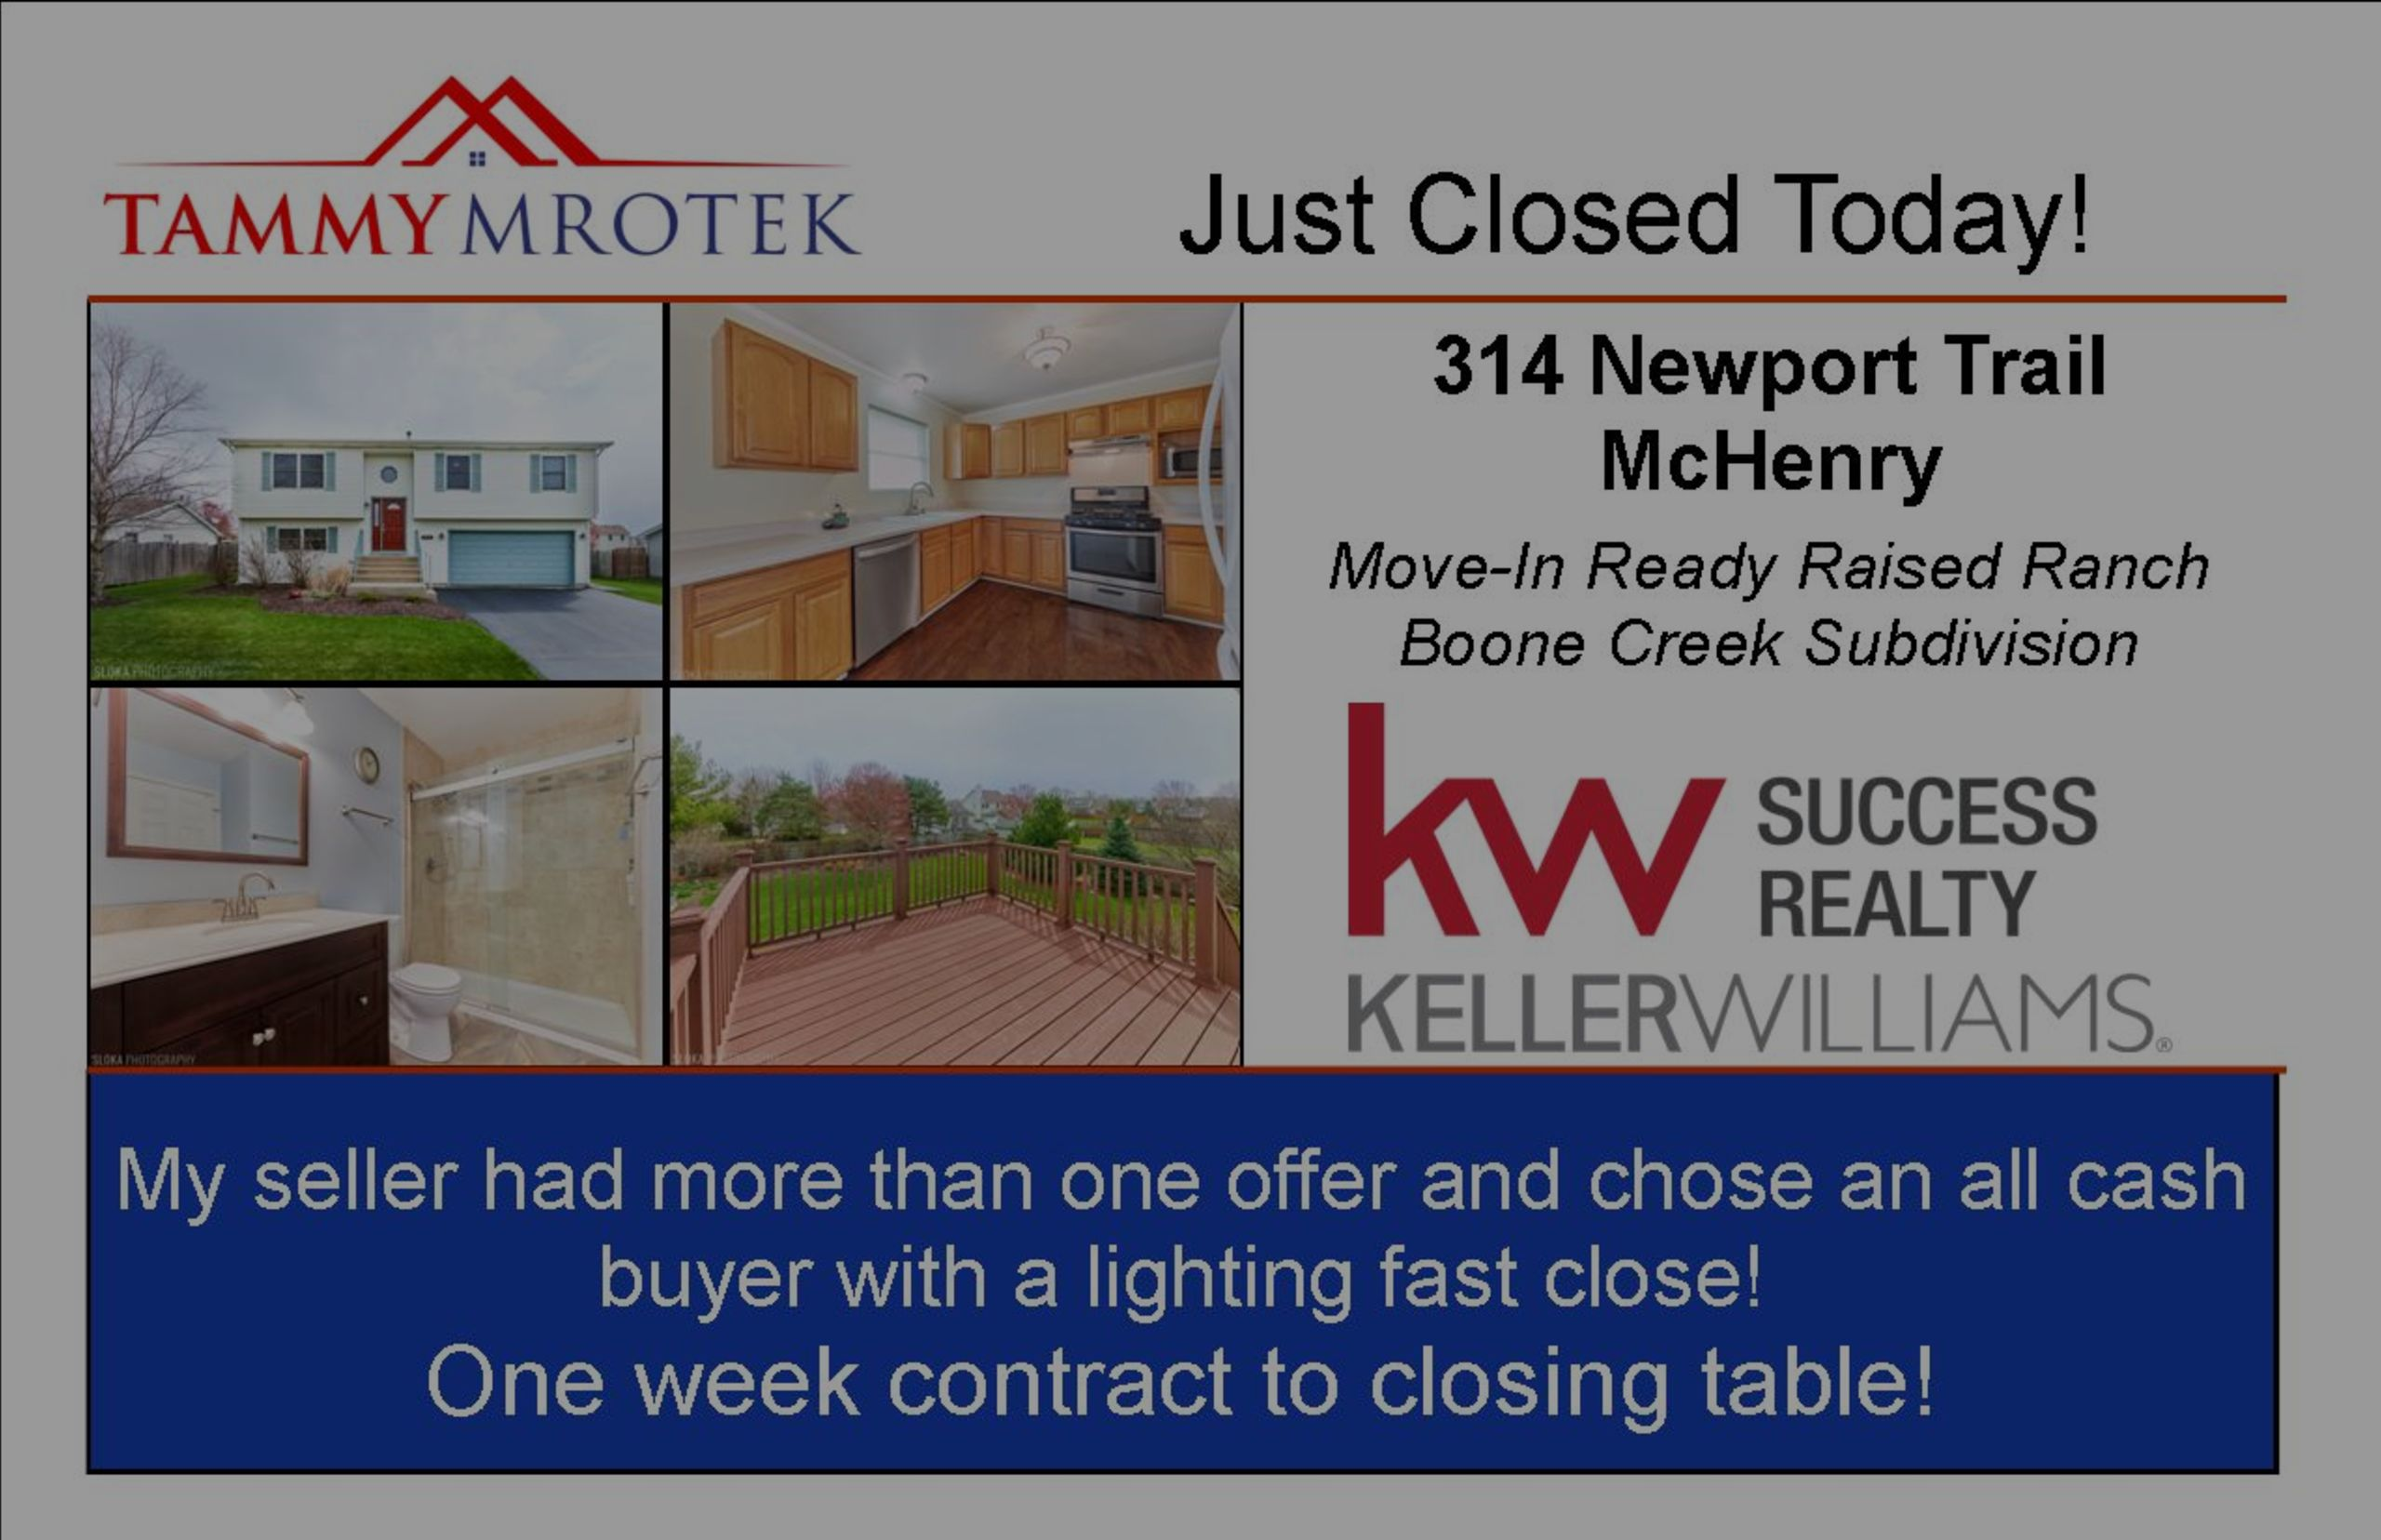 Another Listing Just Closed Today!